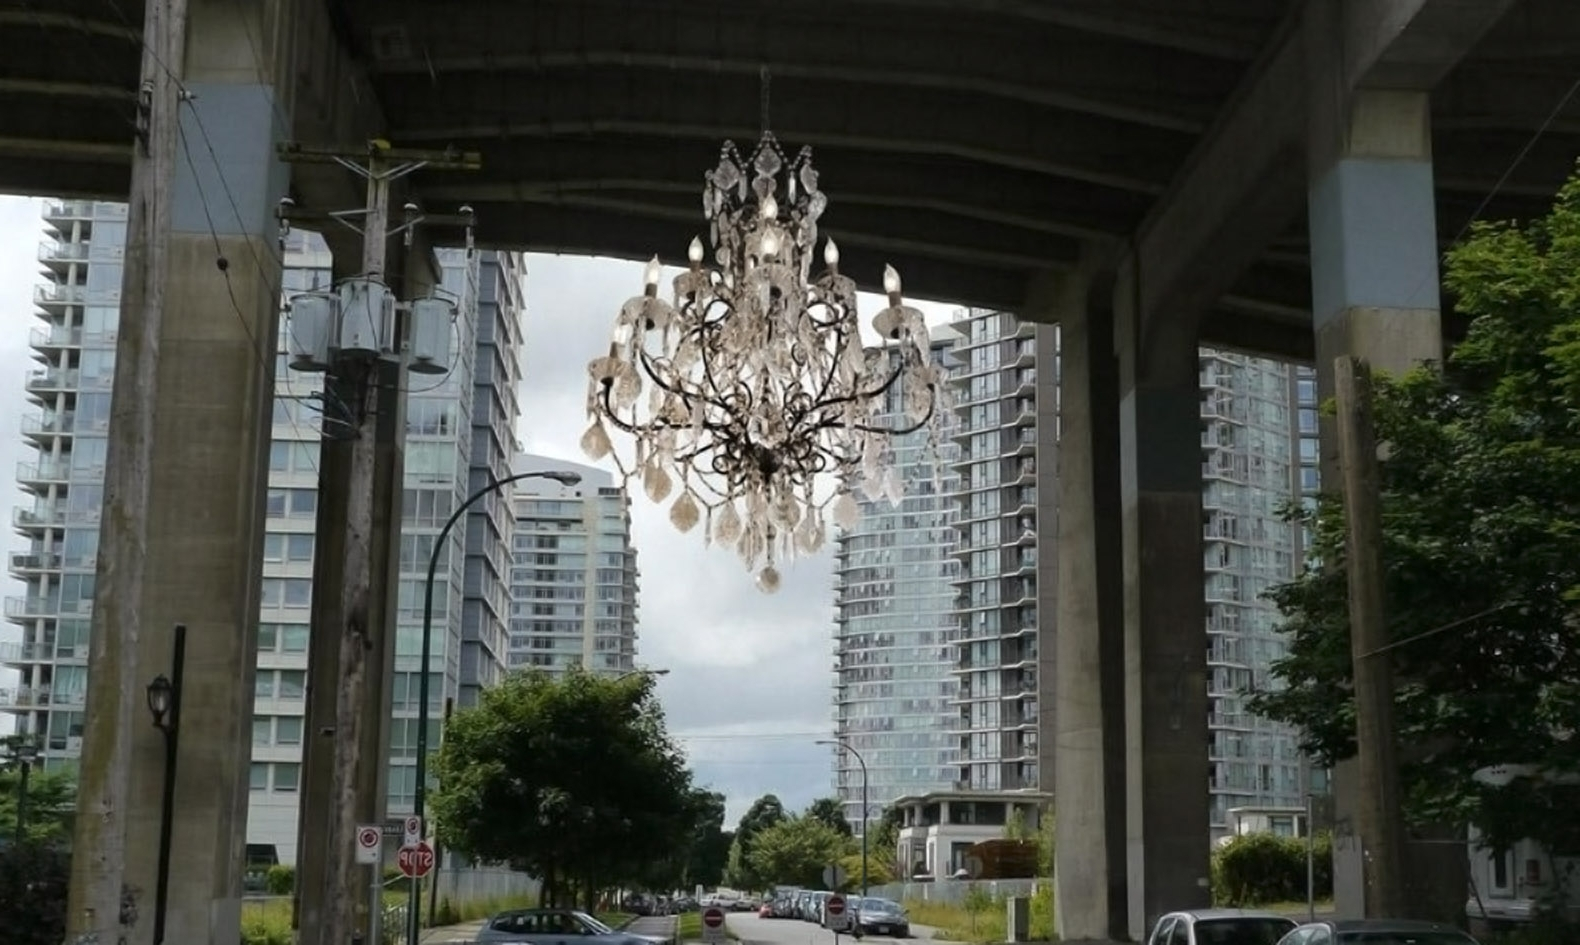 Vancouver Lights Up A Dark Highway Overpass With A Massive Within Current Massive Chandelier (View 13 of 15)